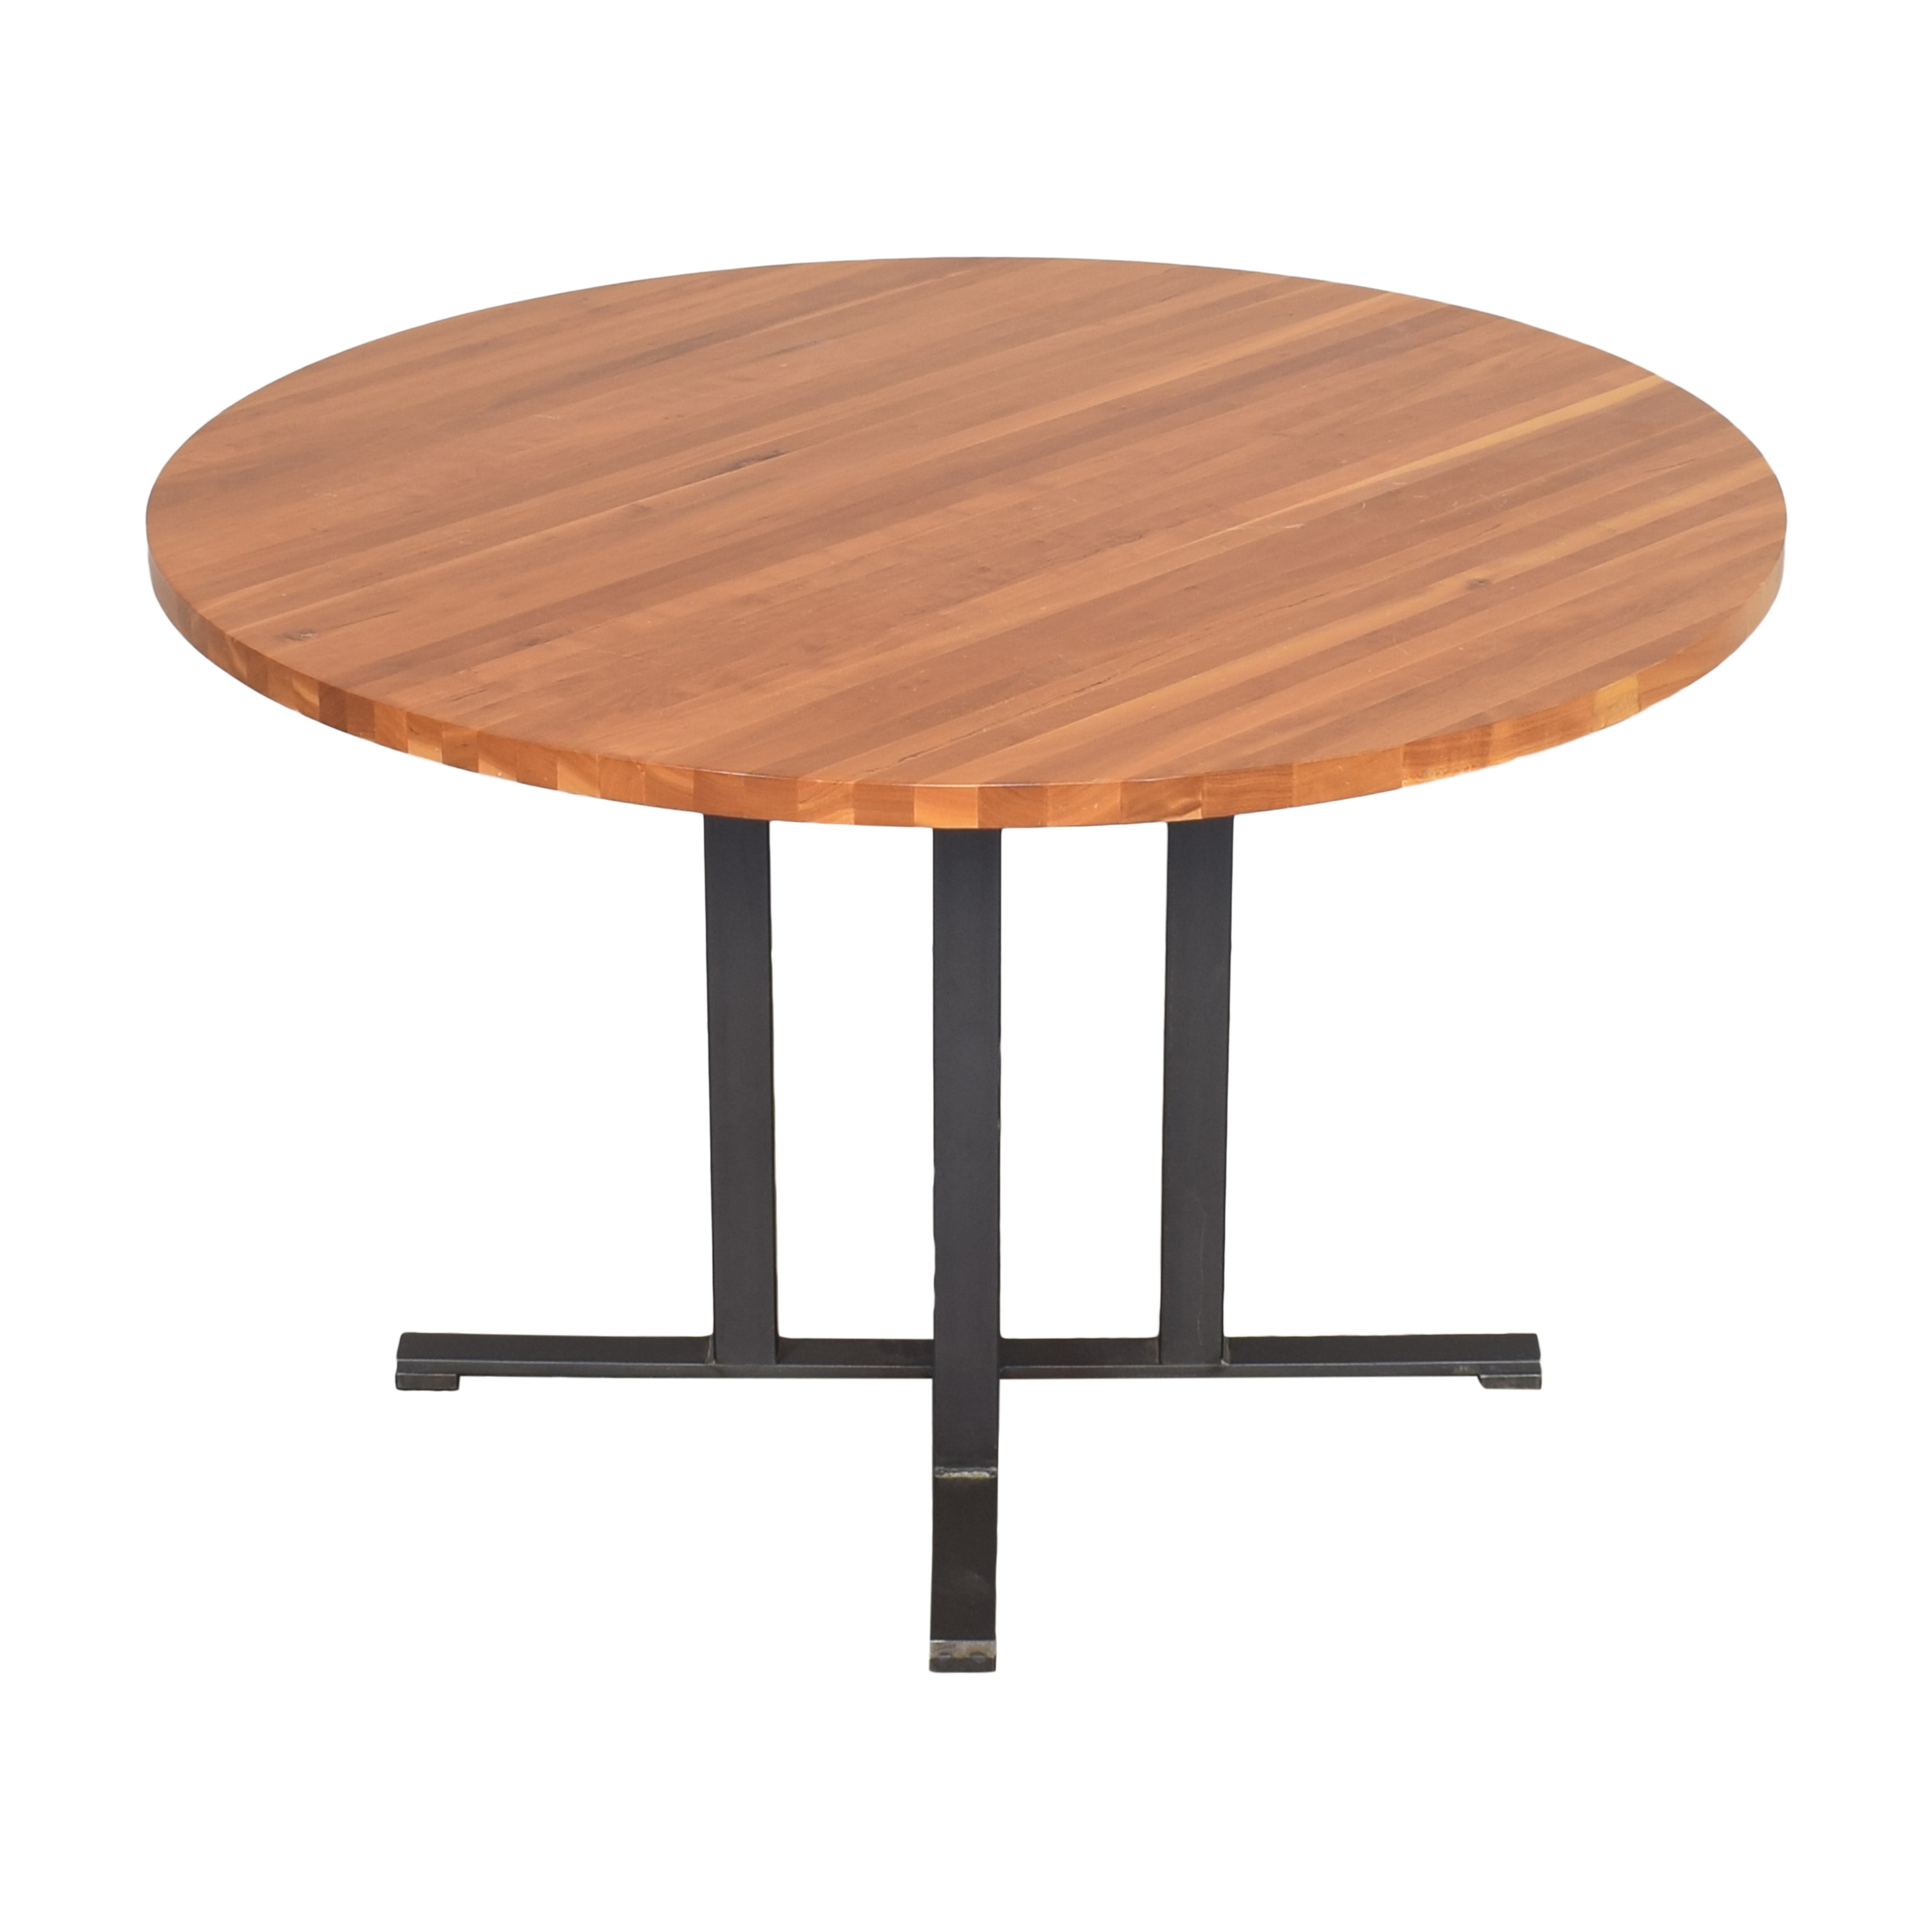 Room & Board Room & Board Round Dining Table dimensions